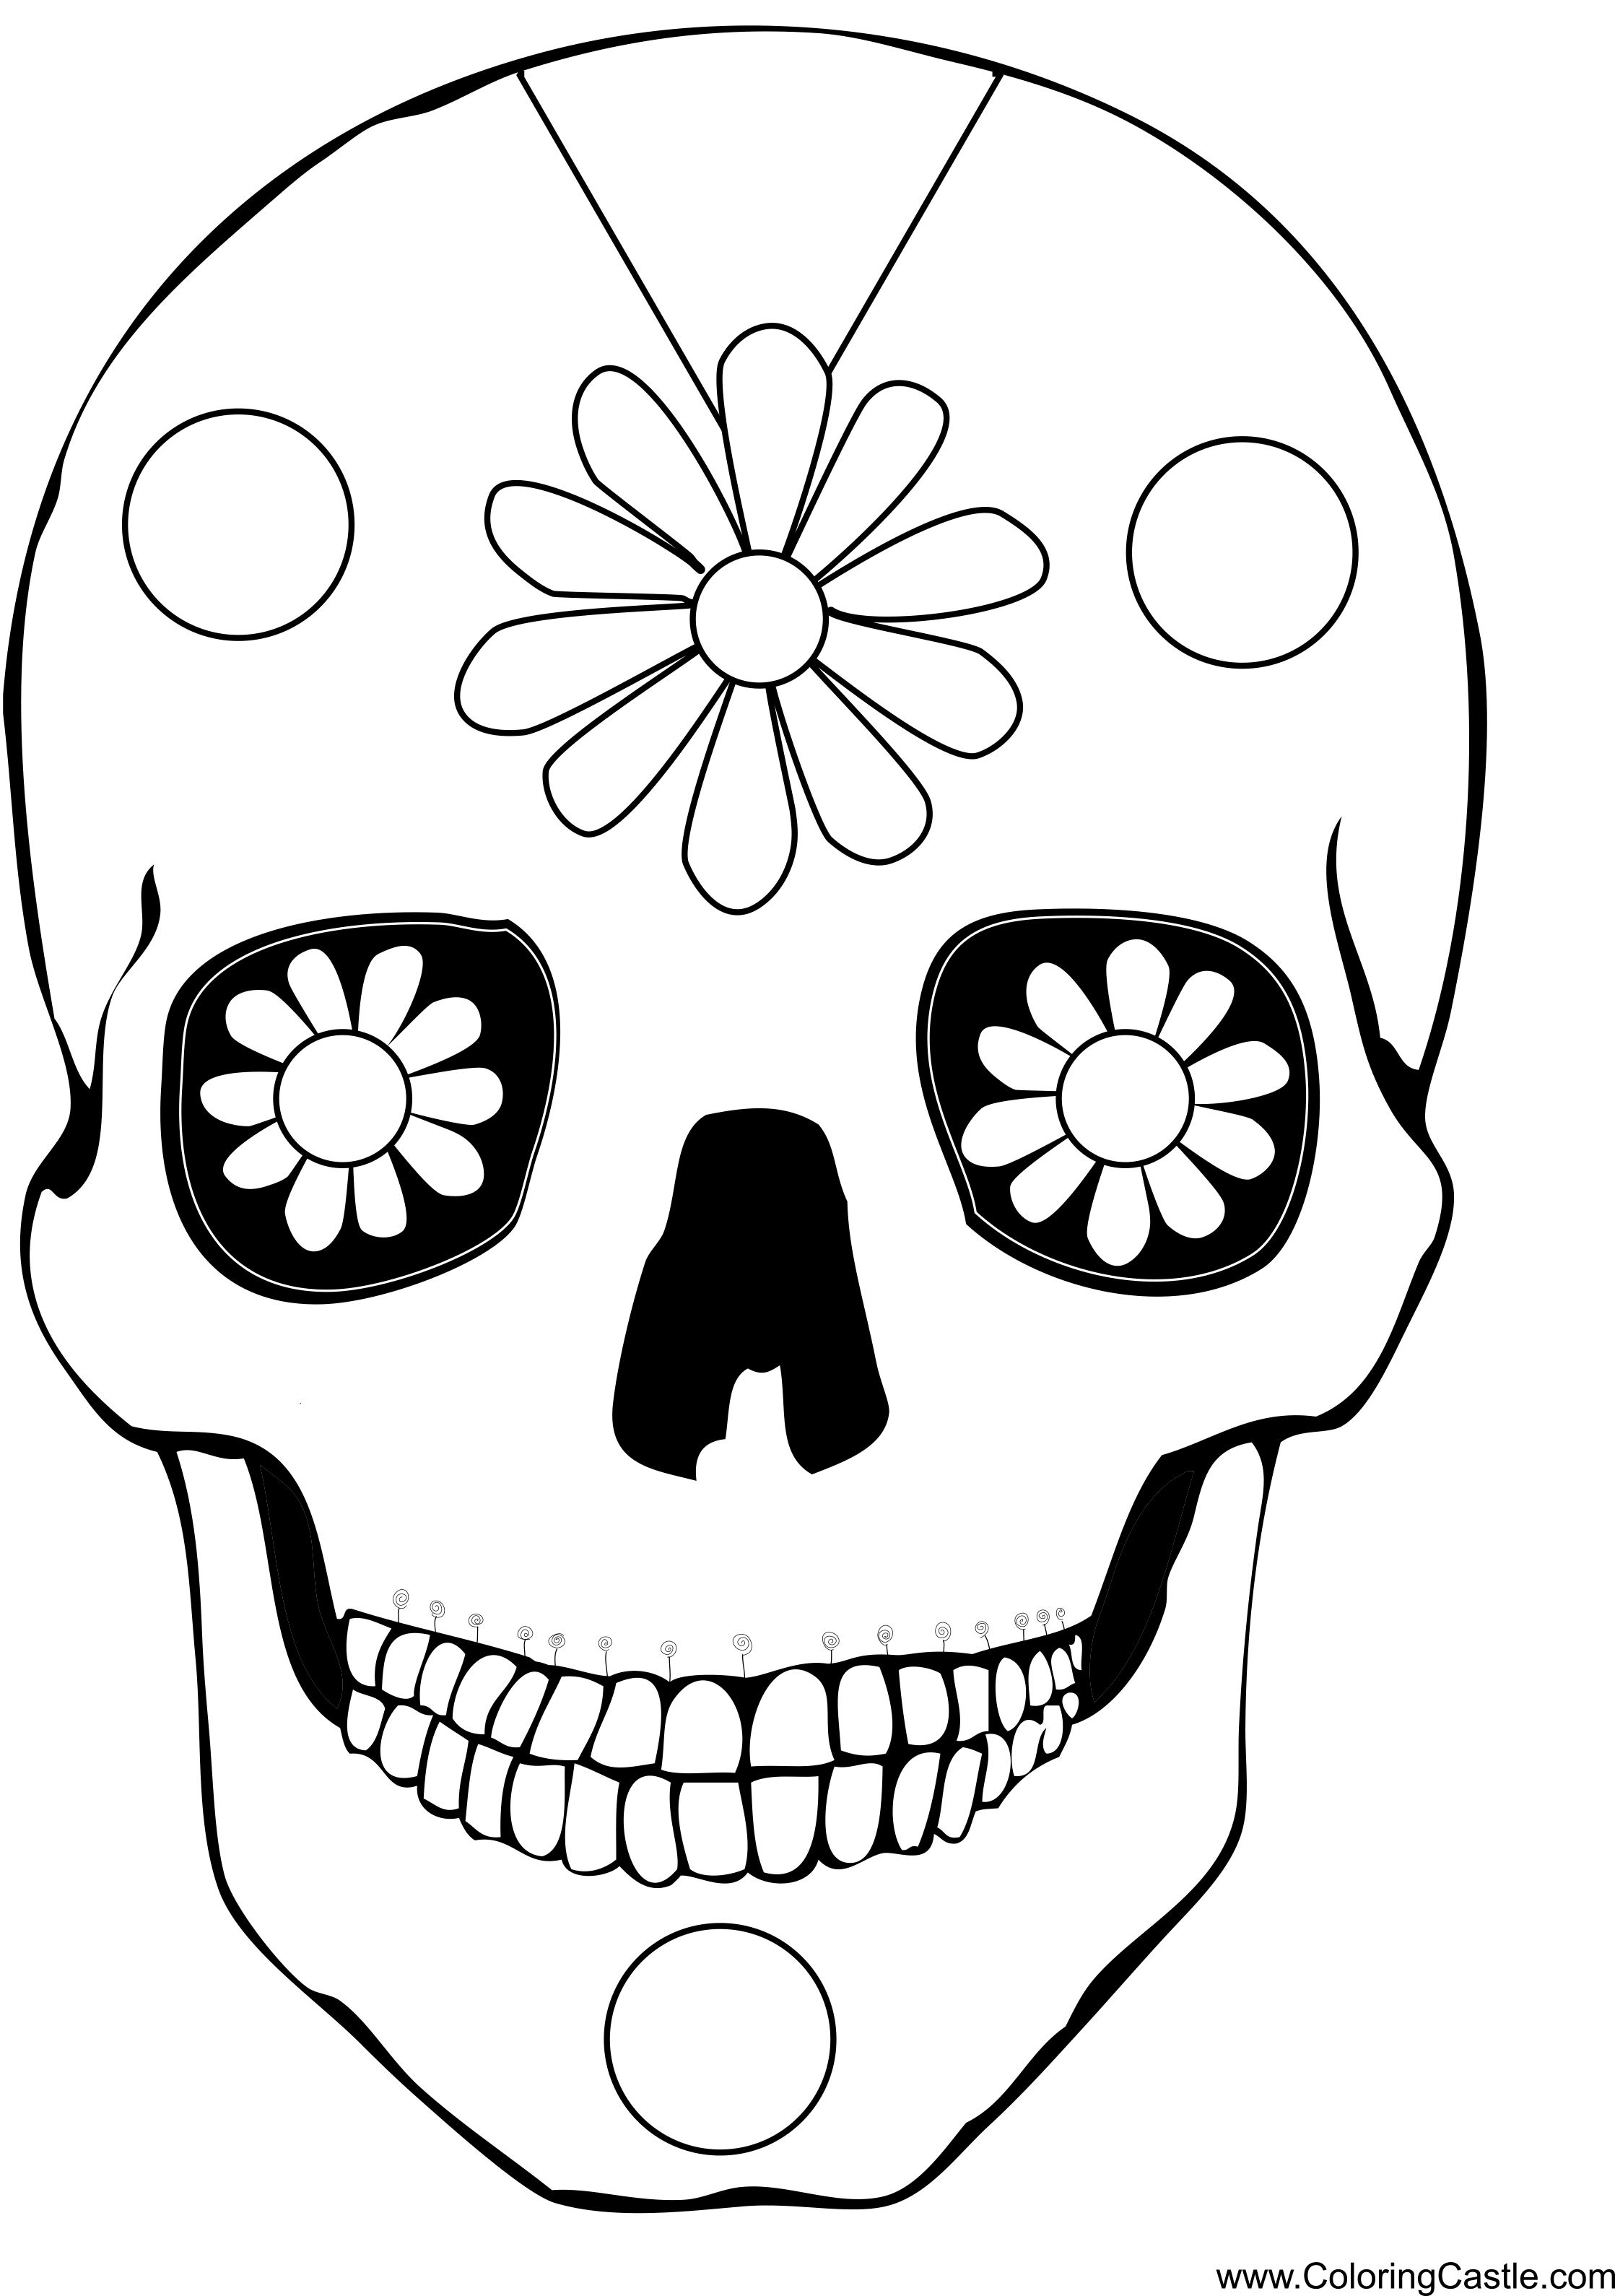 Easy Calavera Mask With Daisies